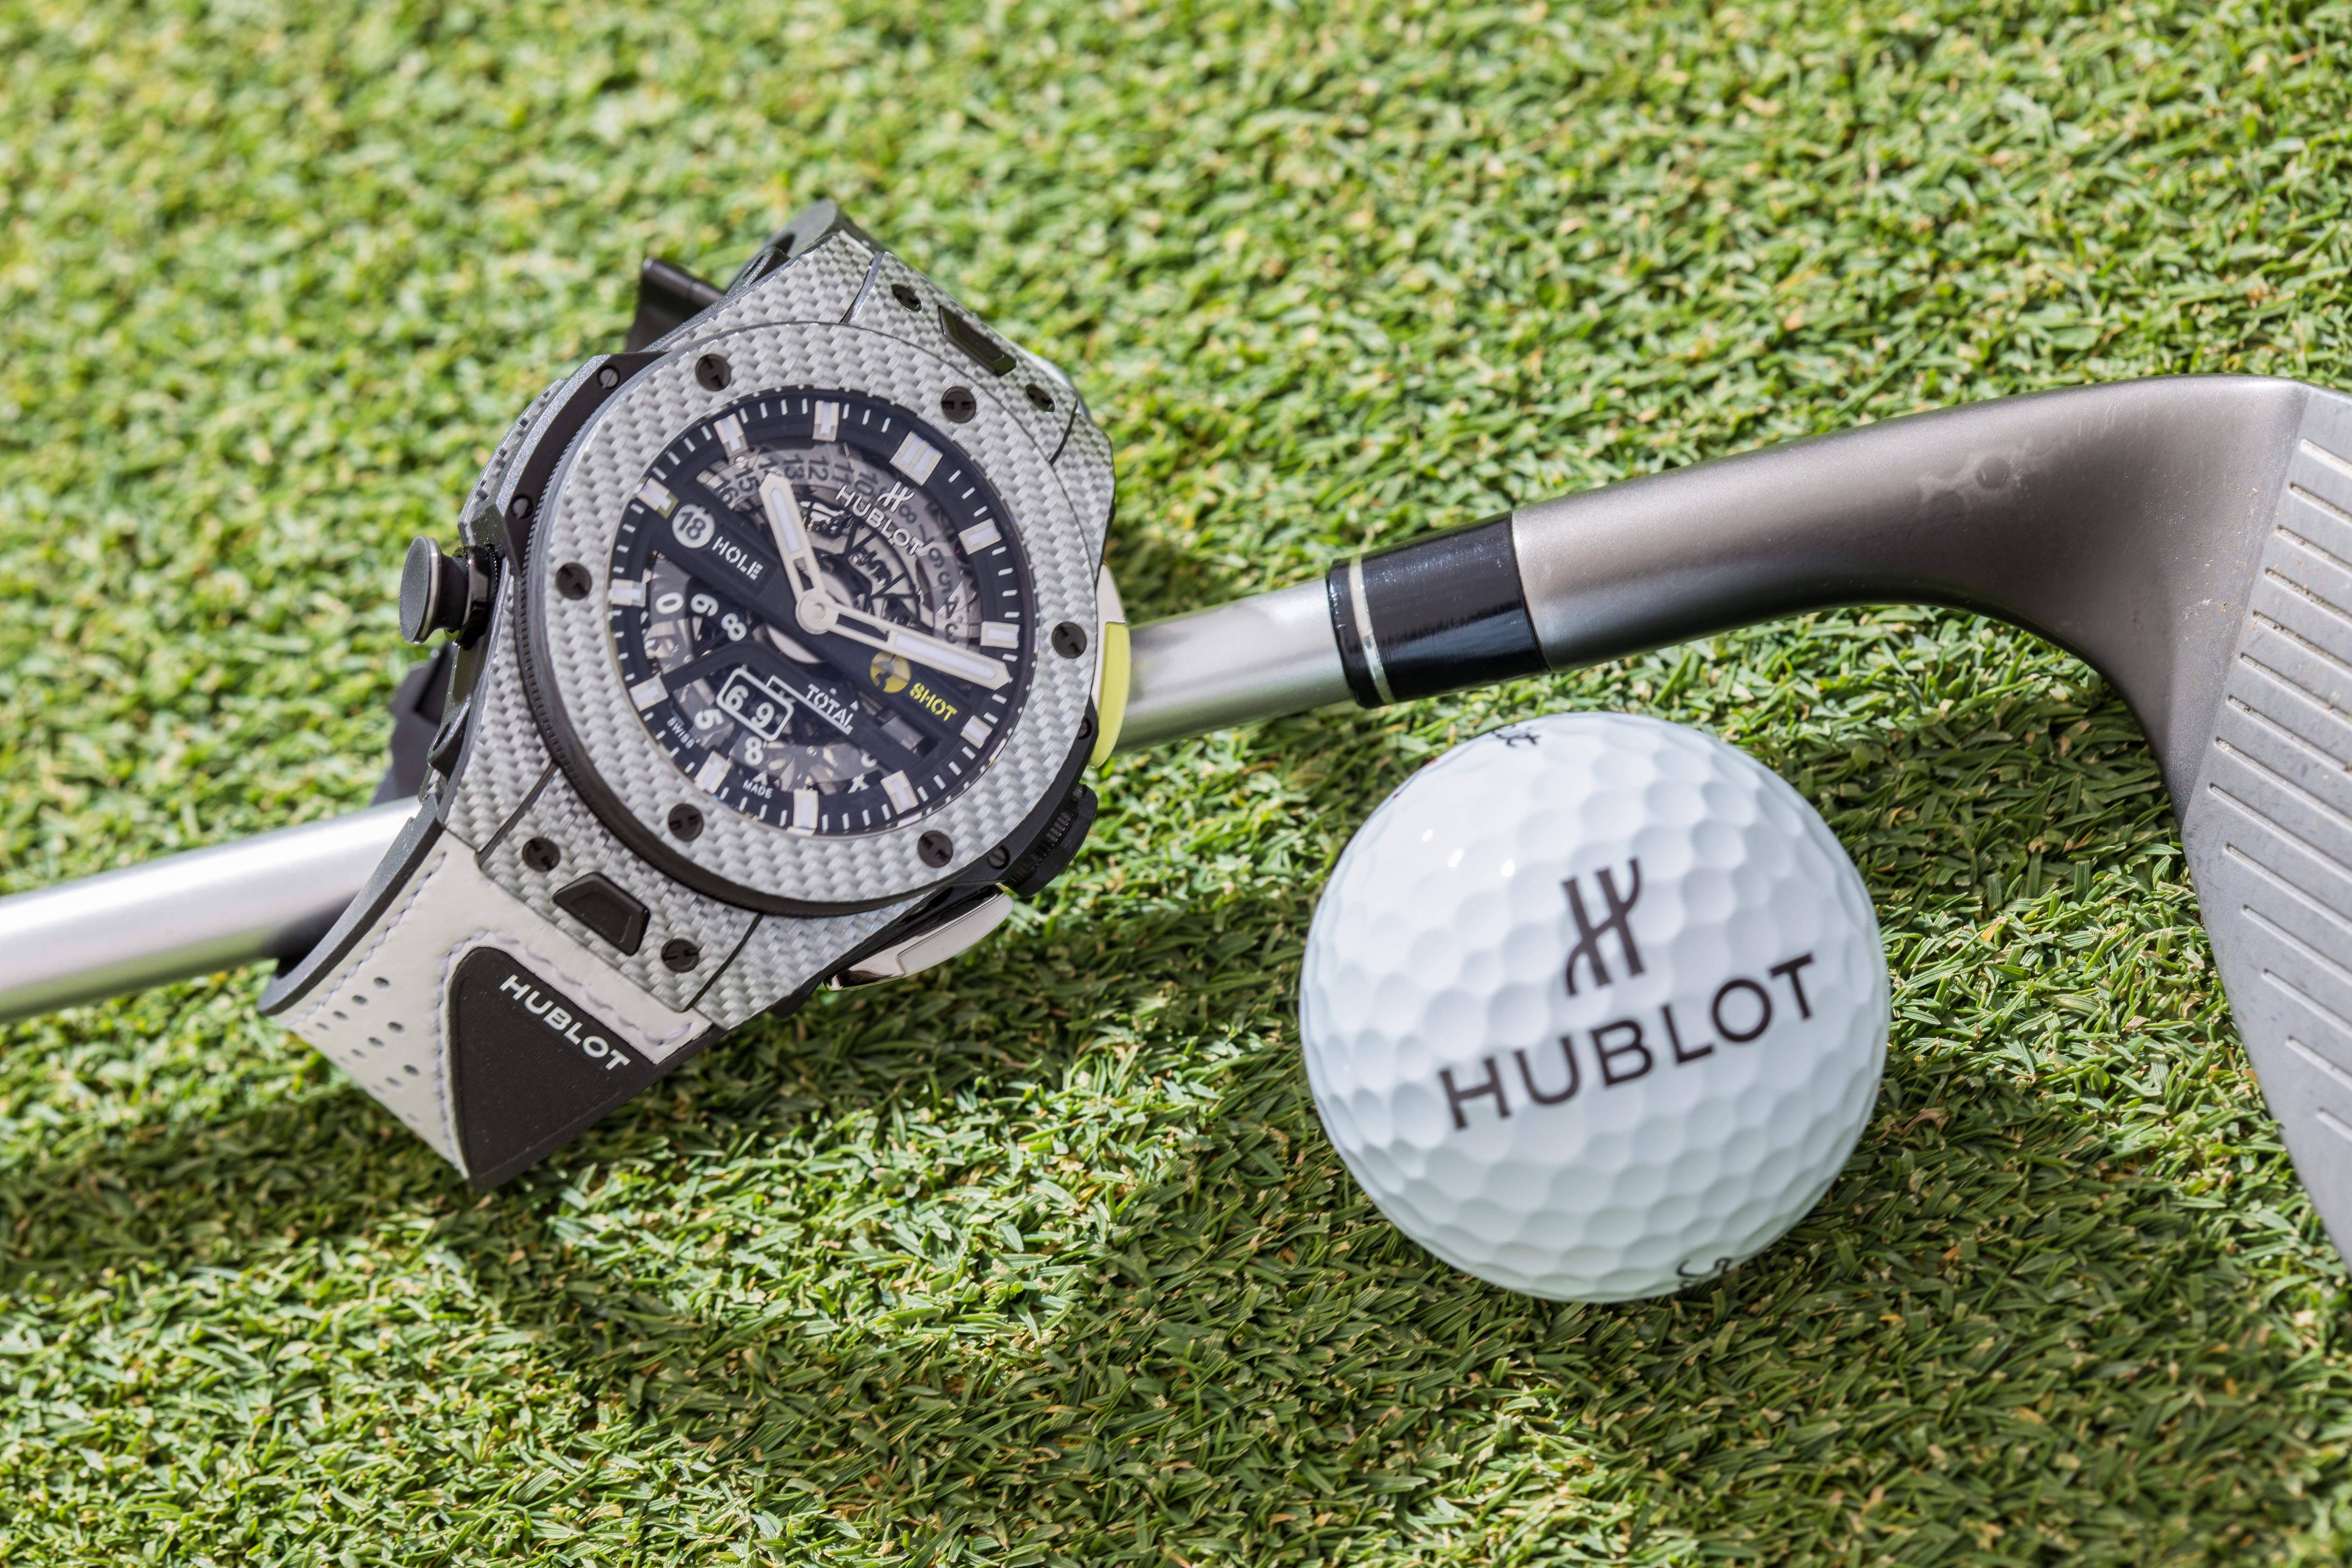 Big Bang UNICO Golf Blue Carbon, Unico Big Bang Golf Blue, Unico Big Bang Golf, Hublot Golf, Hublot Unico Golf, Hublot Big Bang Golf